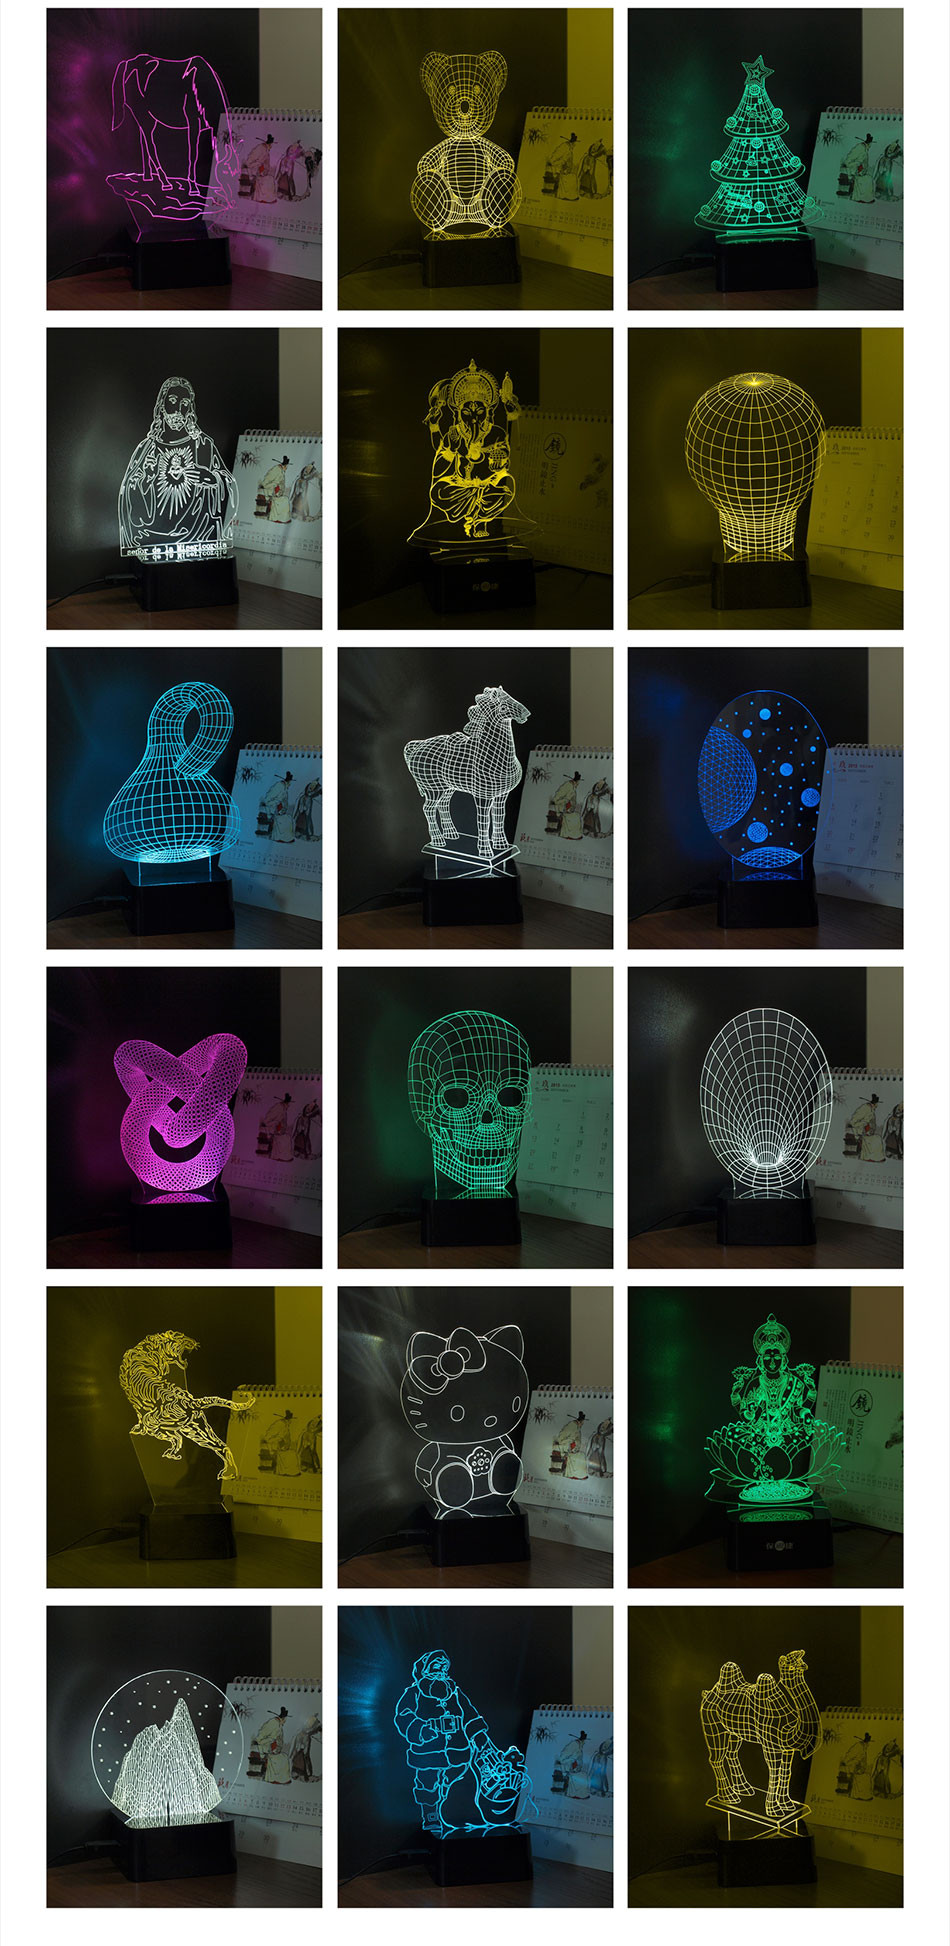 CNHIDEE USB Novelty 3d Lampara Night Lights Star Wars R2D2 Robort Led Lampara as Children Bedroom Luz Nocturna Table Reading Lamp (8)